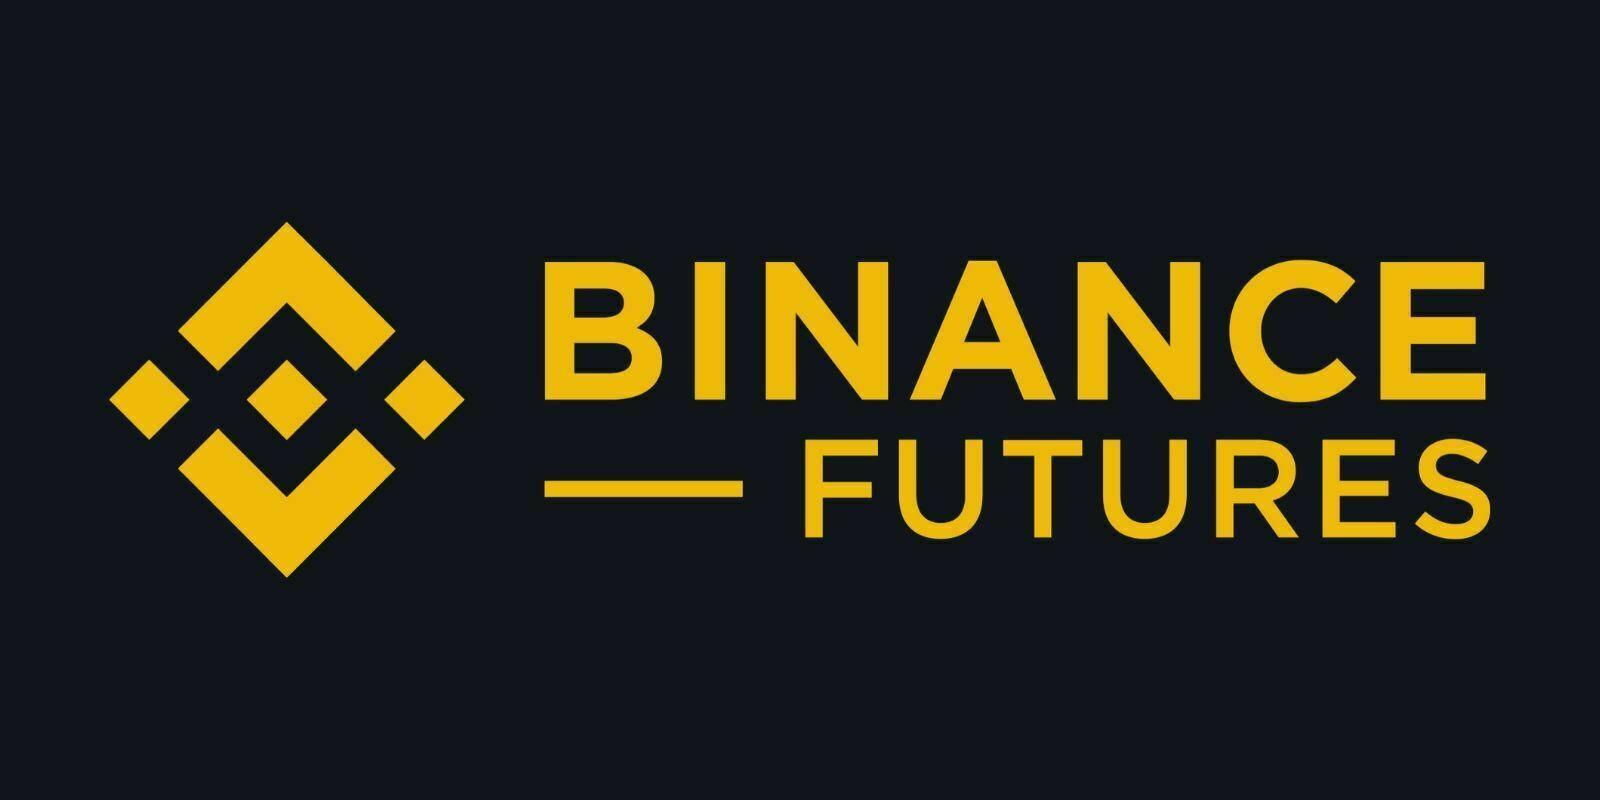 Social Trading on Binance Futures is enabled